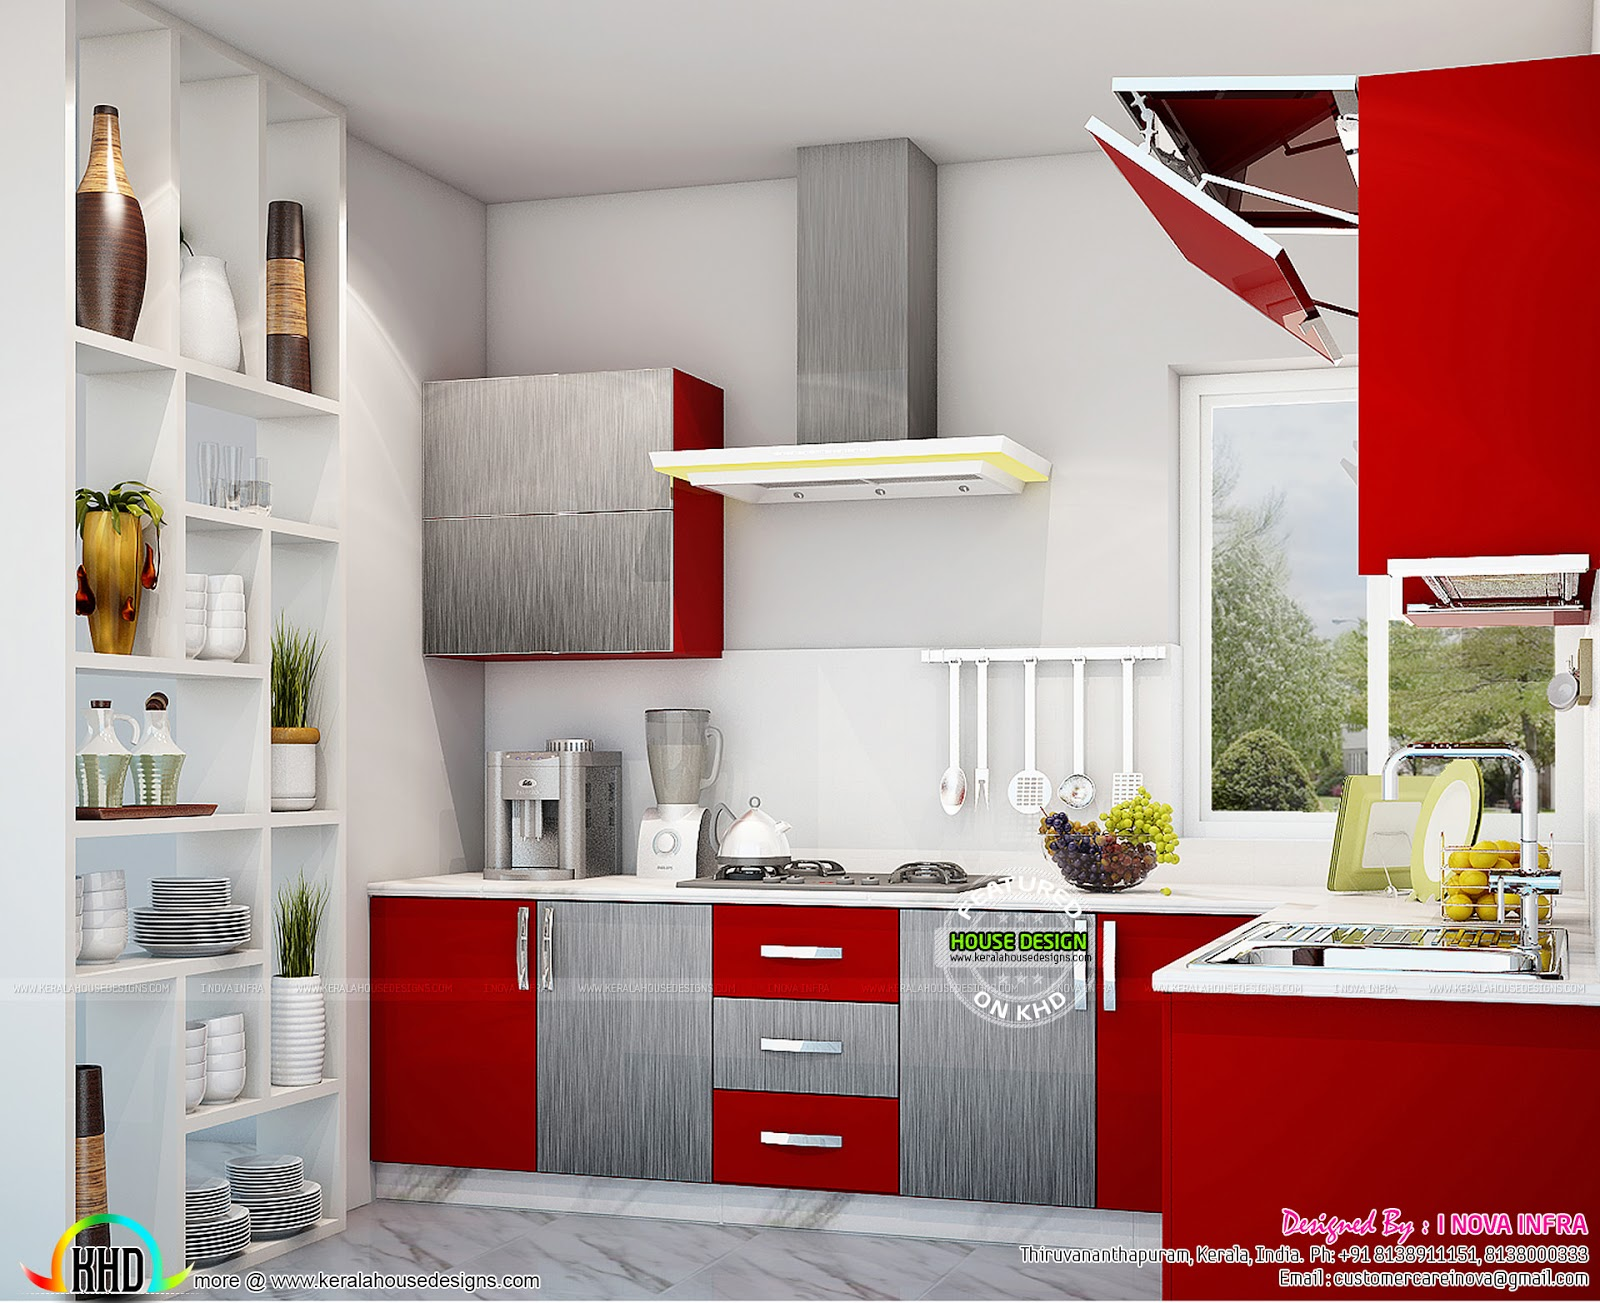 Kitchen interior works at trivandrum kerala home design for Design homes interior